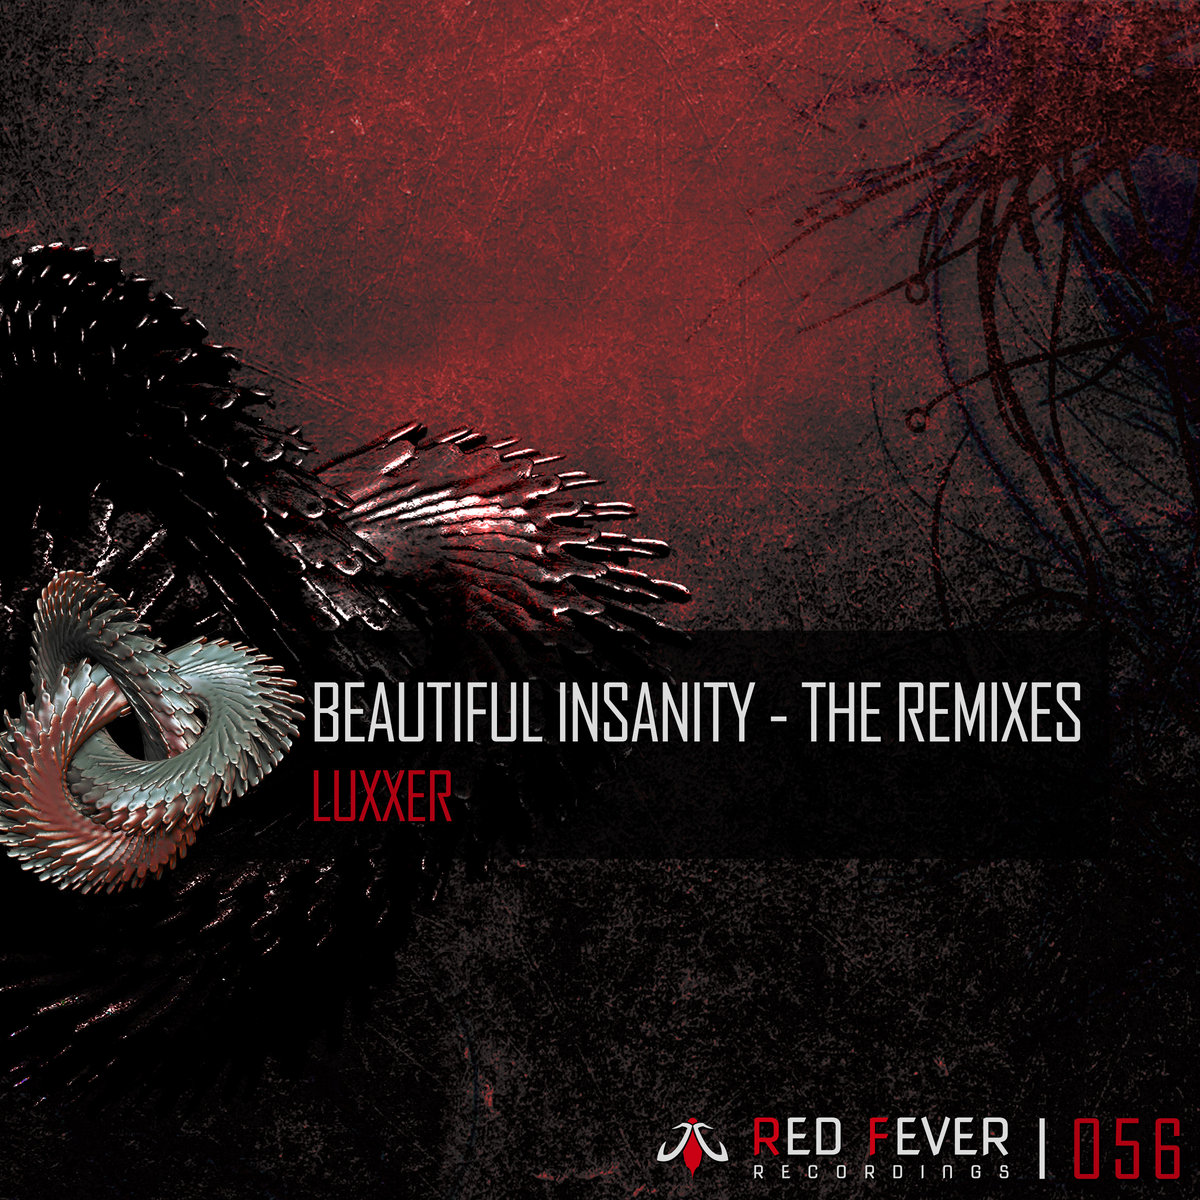 Luxxer - Beautiful Insanity (Skuffa's Medication mix) @ 'Beautiful Insanity (The remixes)' album (carnage, cluster)